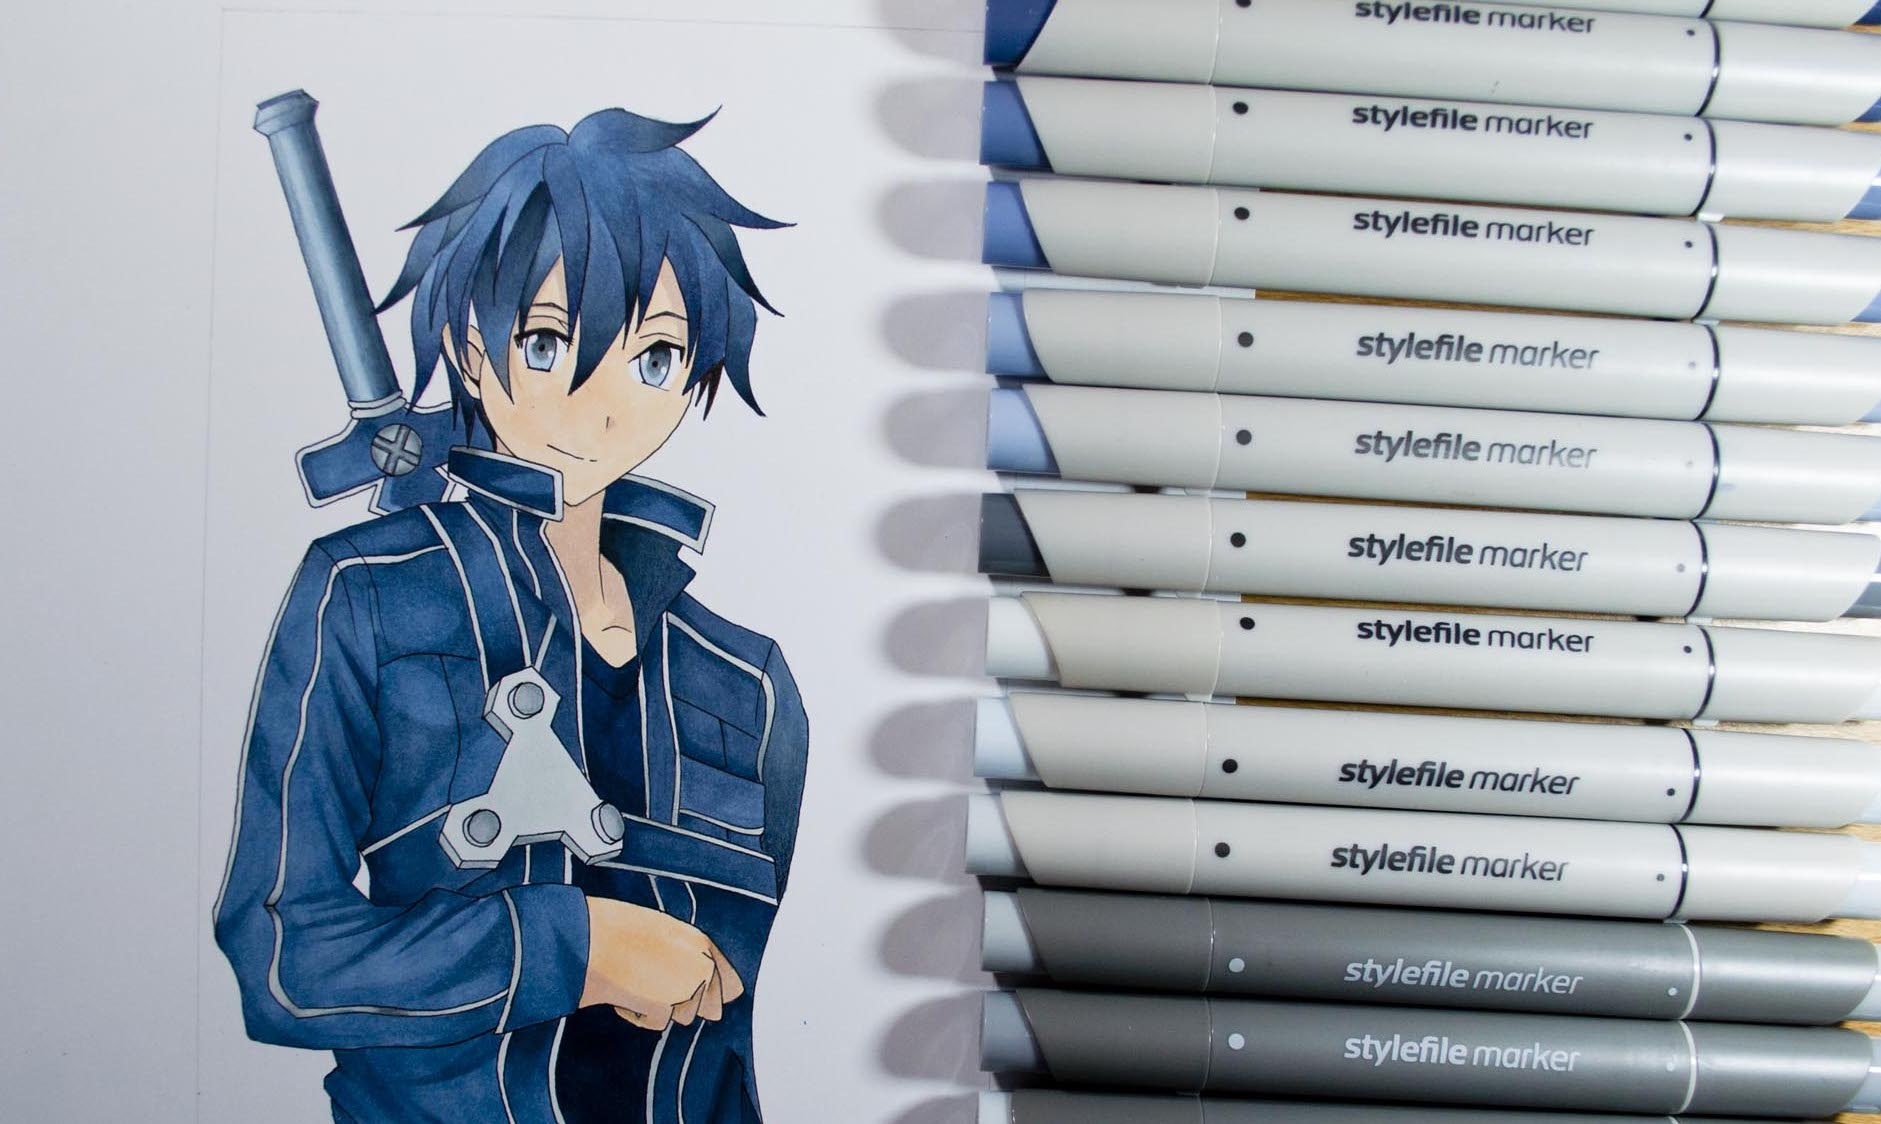 final SAO Image With Markers copy.jpg